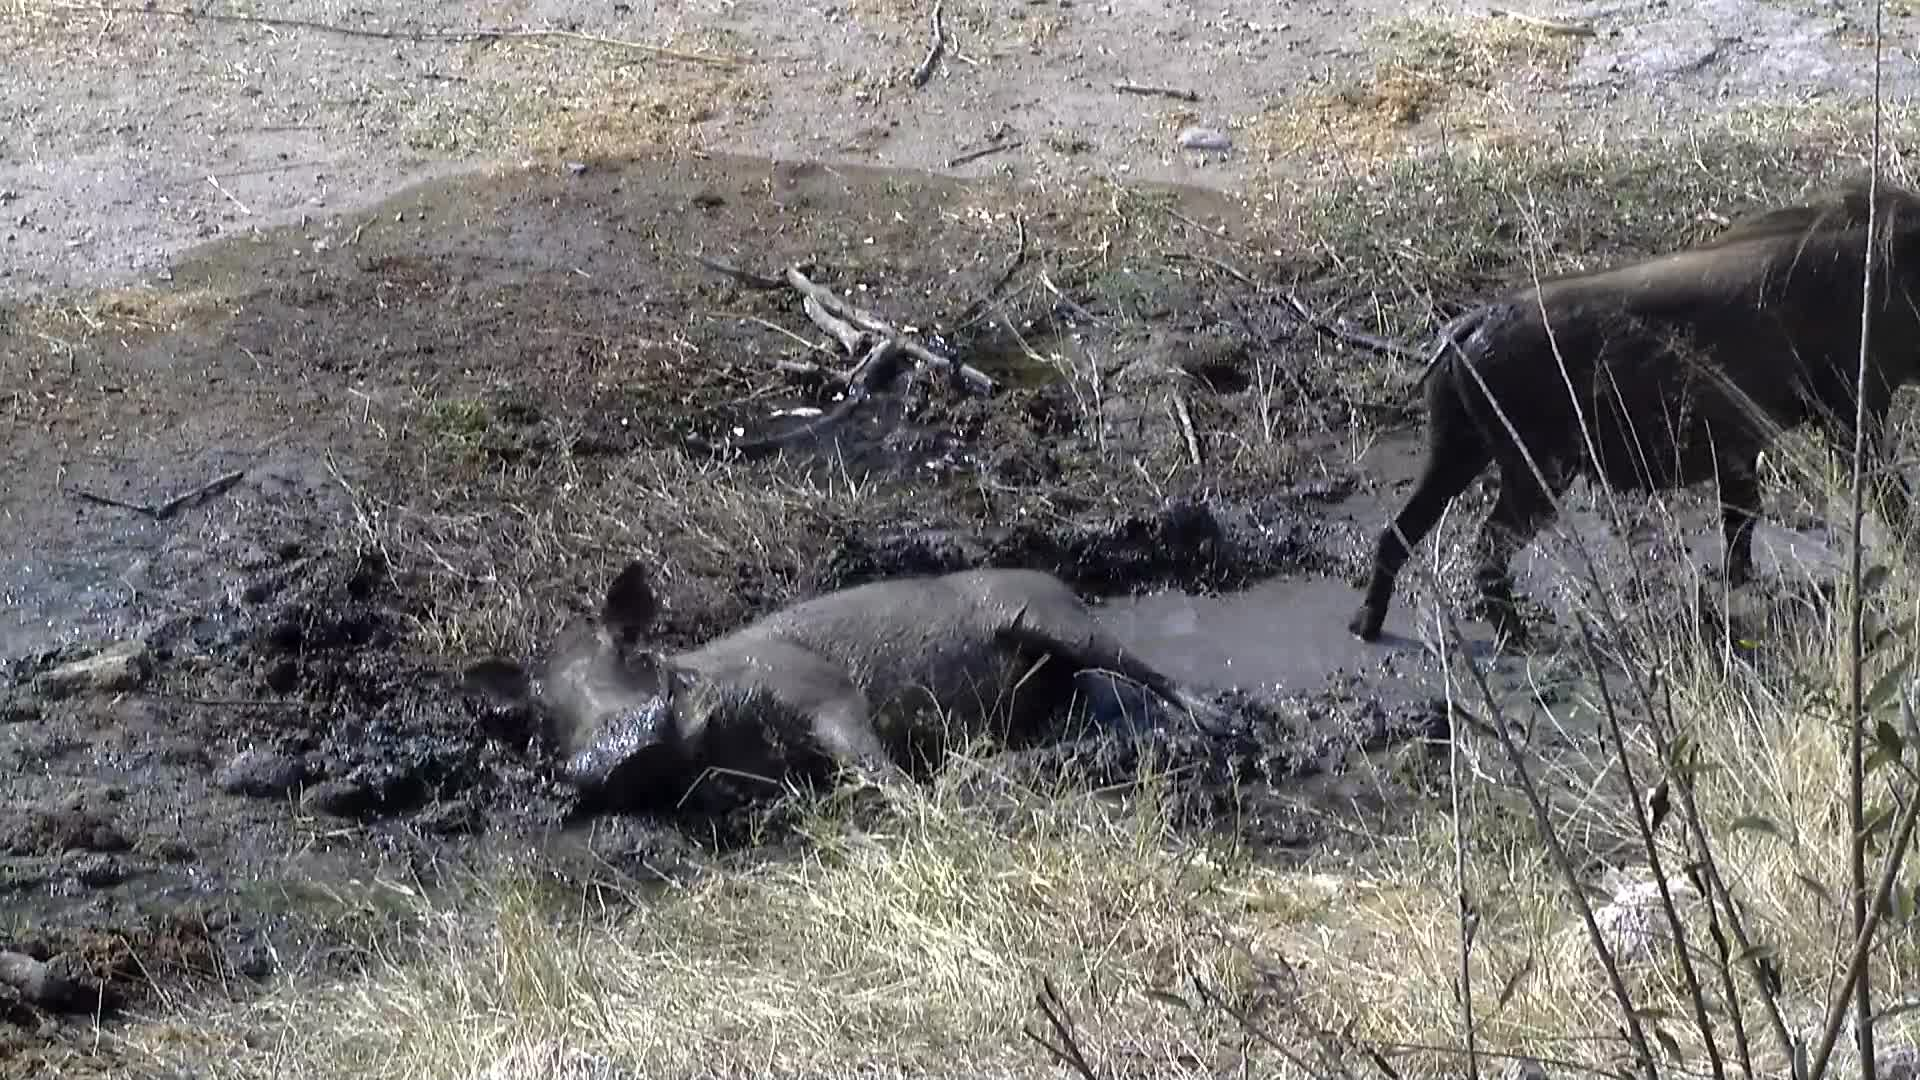 VIDEO:  Warthogs cooling off in the mud and water near the waterhole